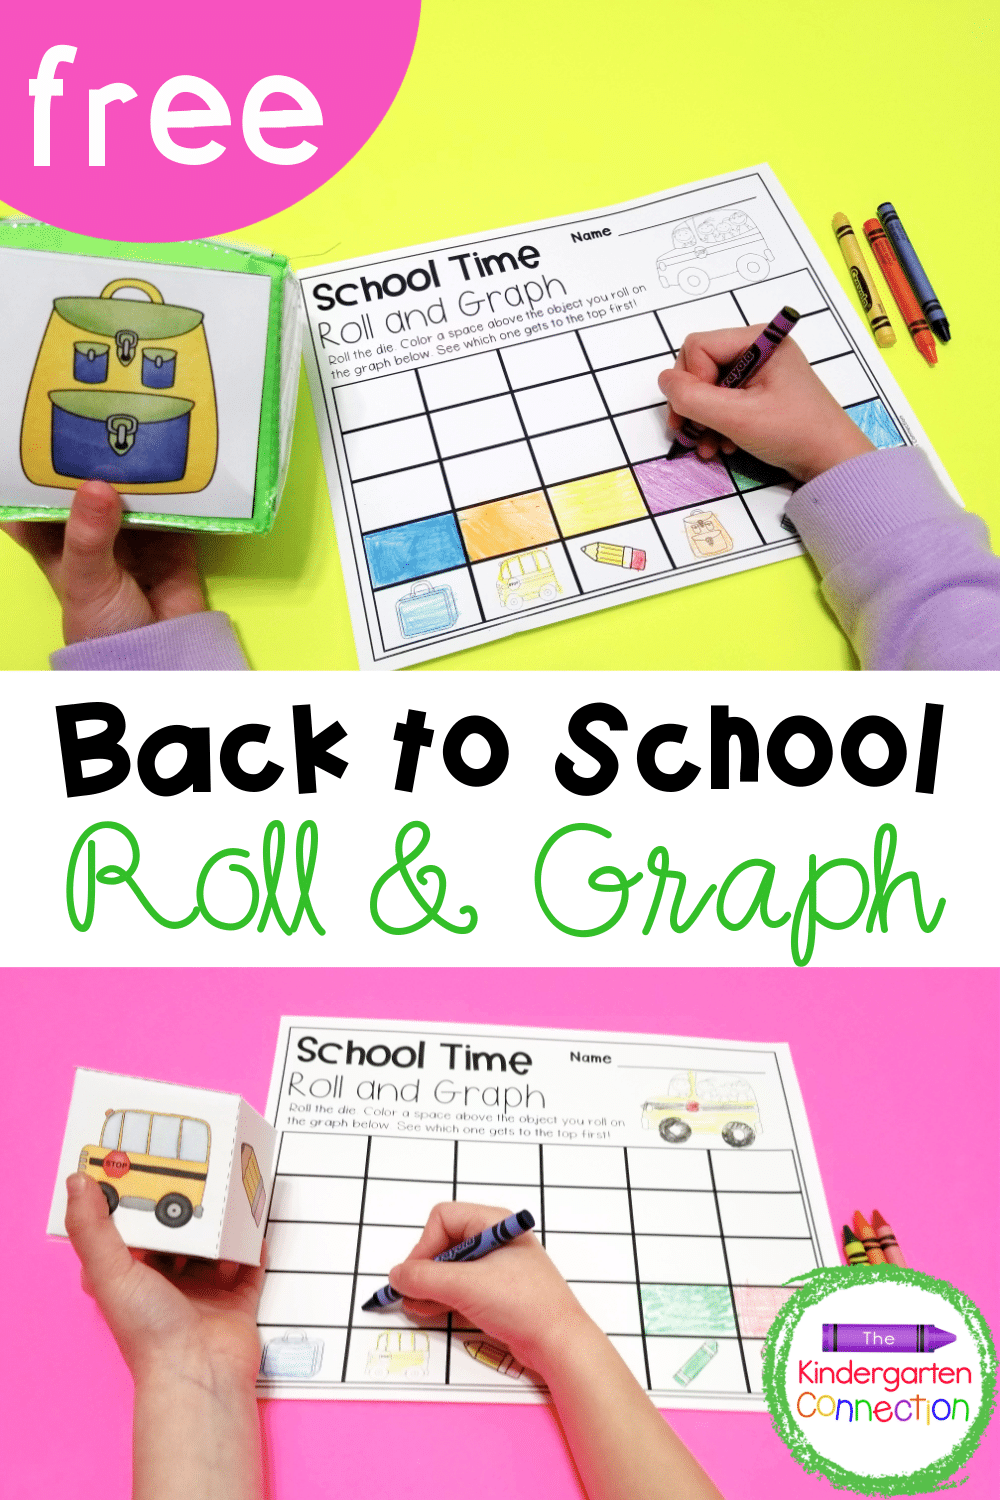 Grab this FREE Back to School Roll and Graph Math Activity for your Kindergarten centers! Turn it into a fun racing game with partners!